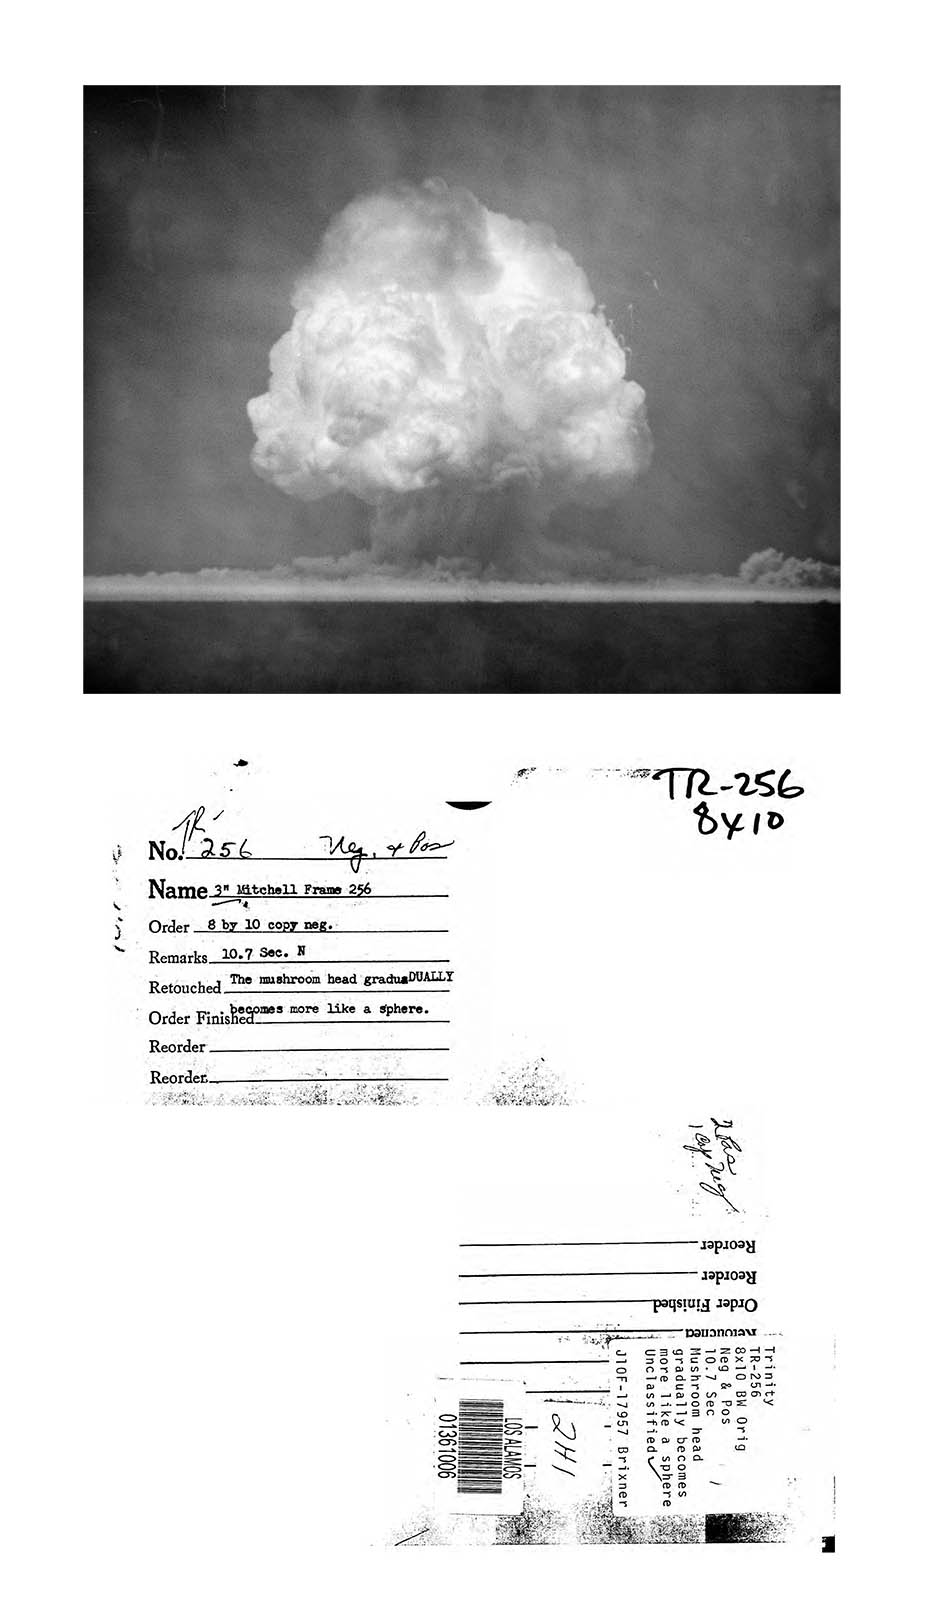 Mary Kavanagh, Selected Images from Trinity Archive, 1945-1946 [from Daughters of Uranium], 2019-2020 (3)